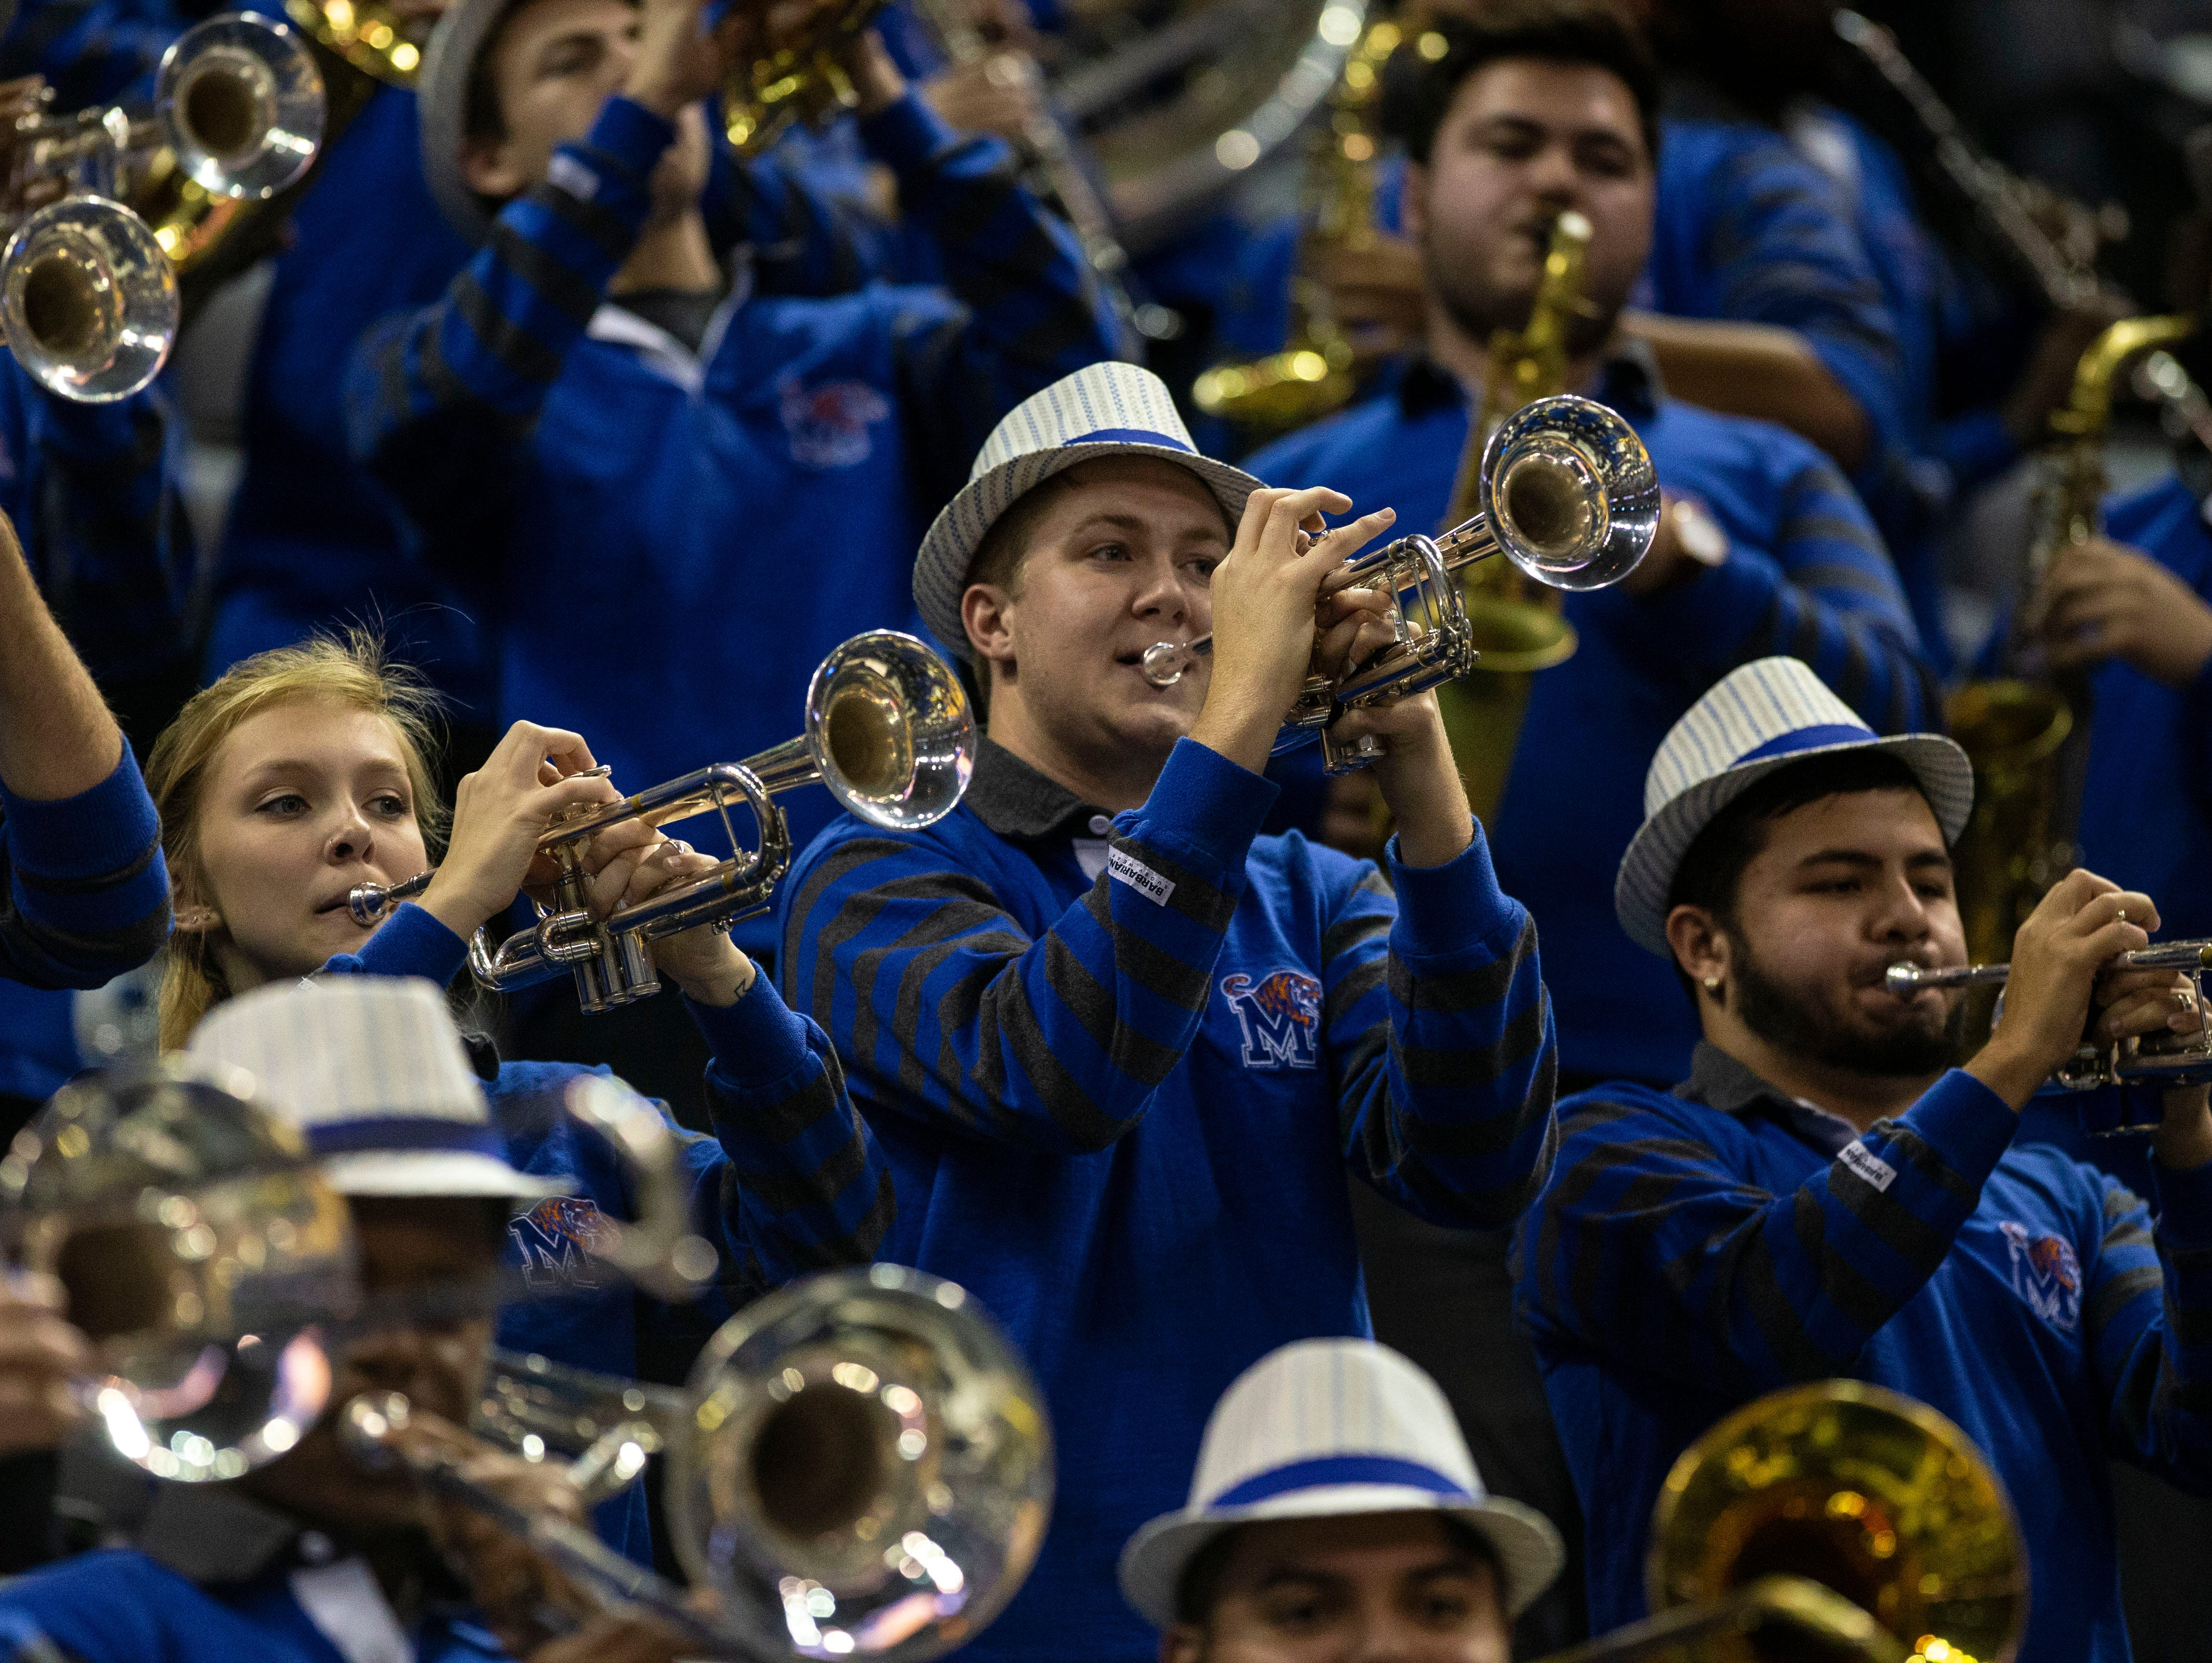 Memphis Tigers band plays during a basketball game between the Memphis Tigers and the South Dakota State Jackrabbits in the Fedex Forum, Tuesday, Dec. 4, 2018.